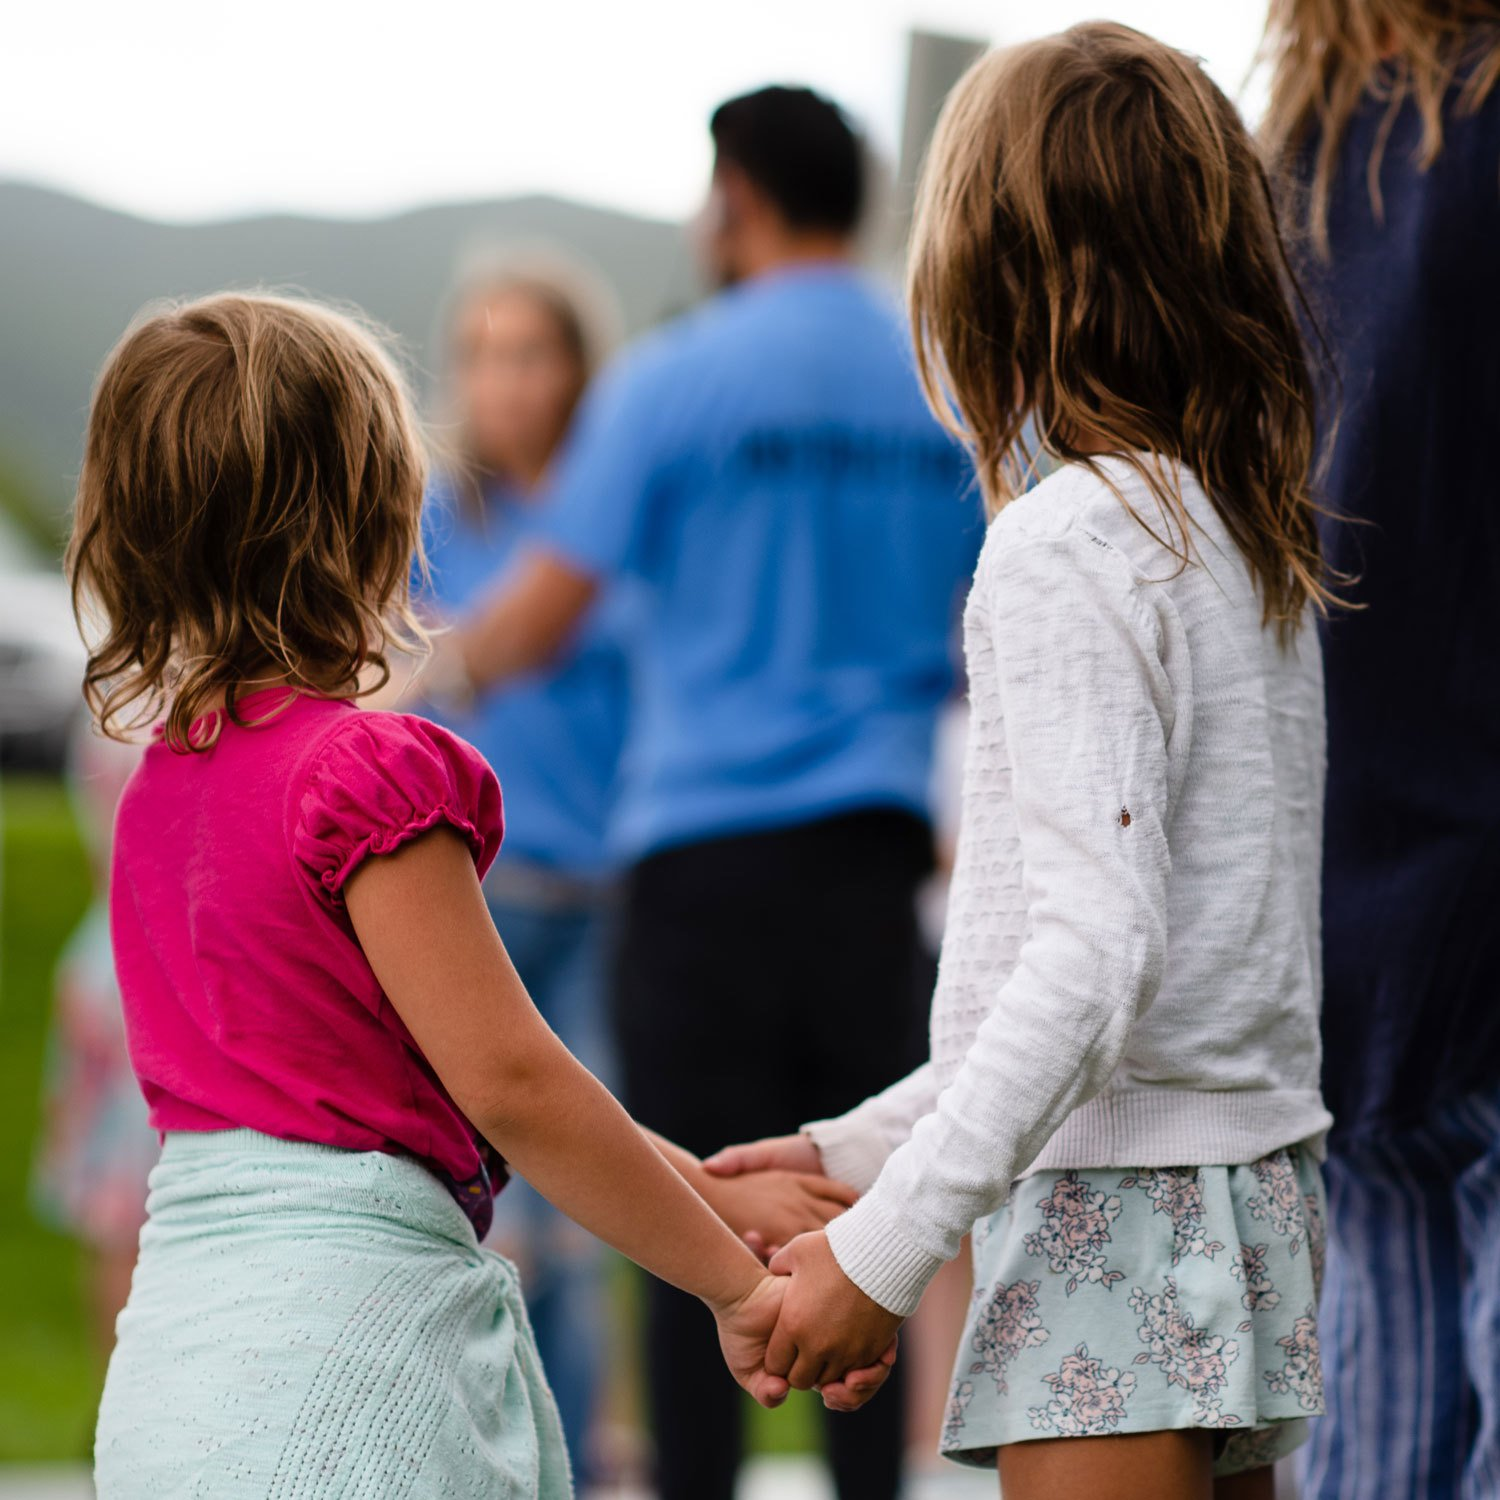 Children holding hands at Basalsa, Photo Sopris Media